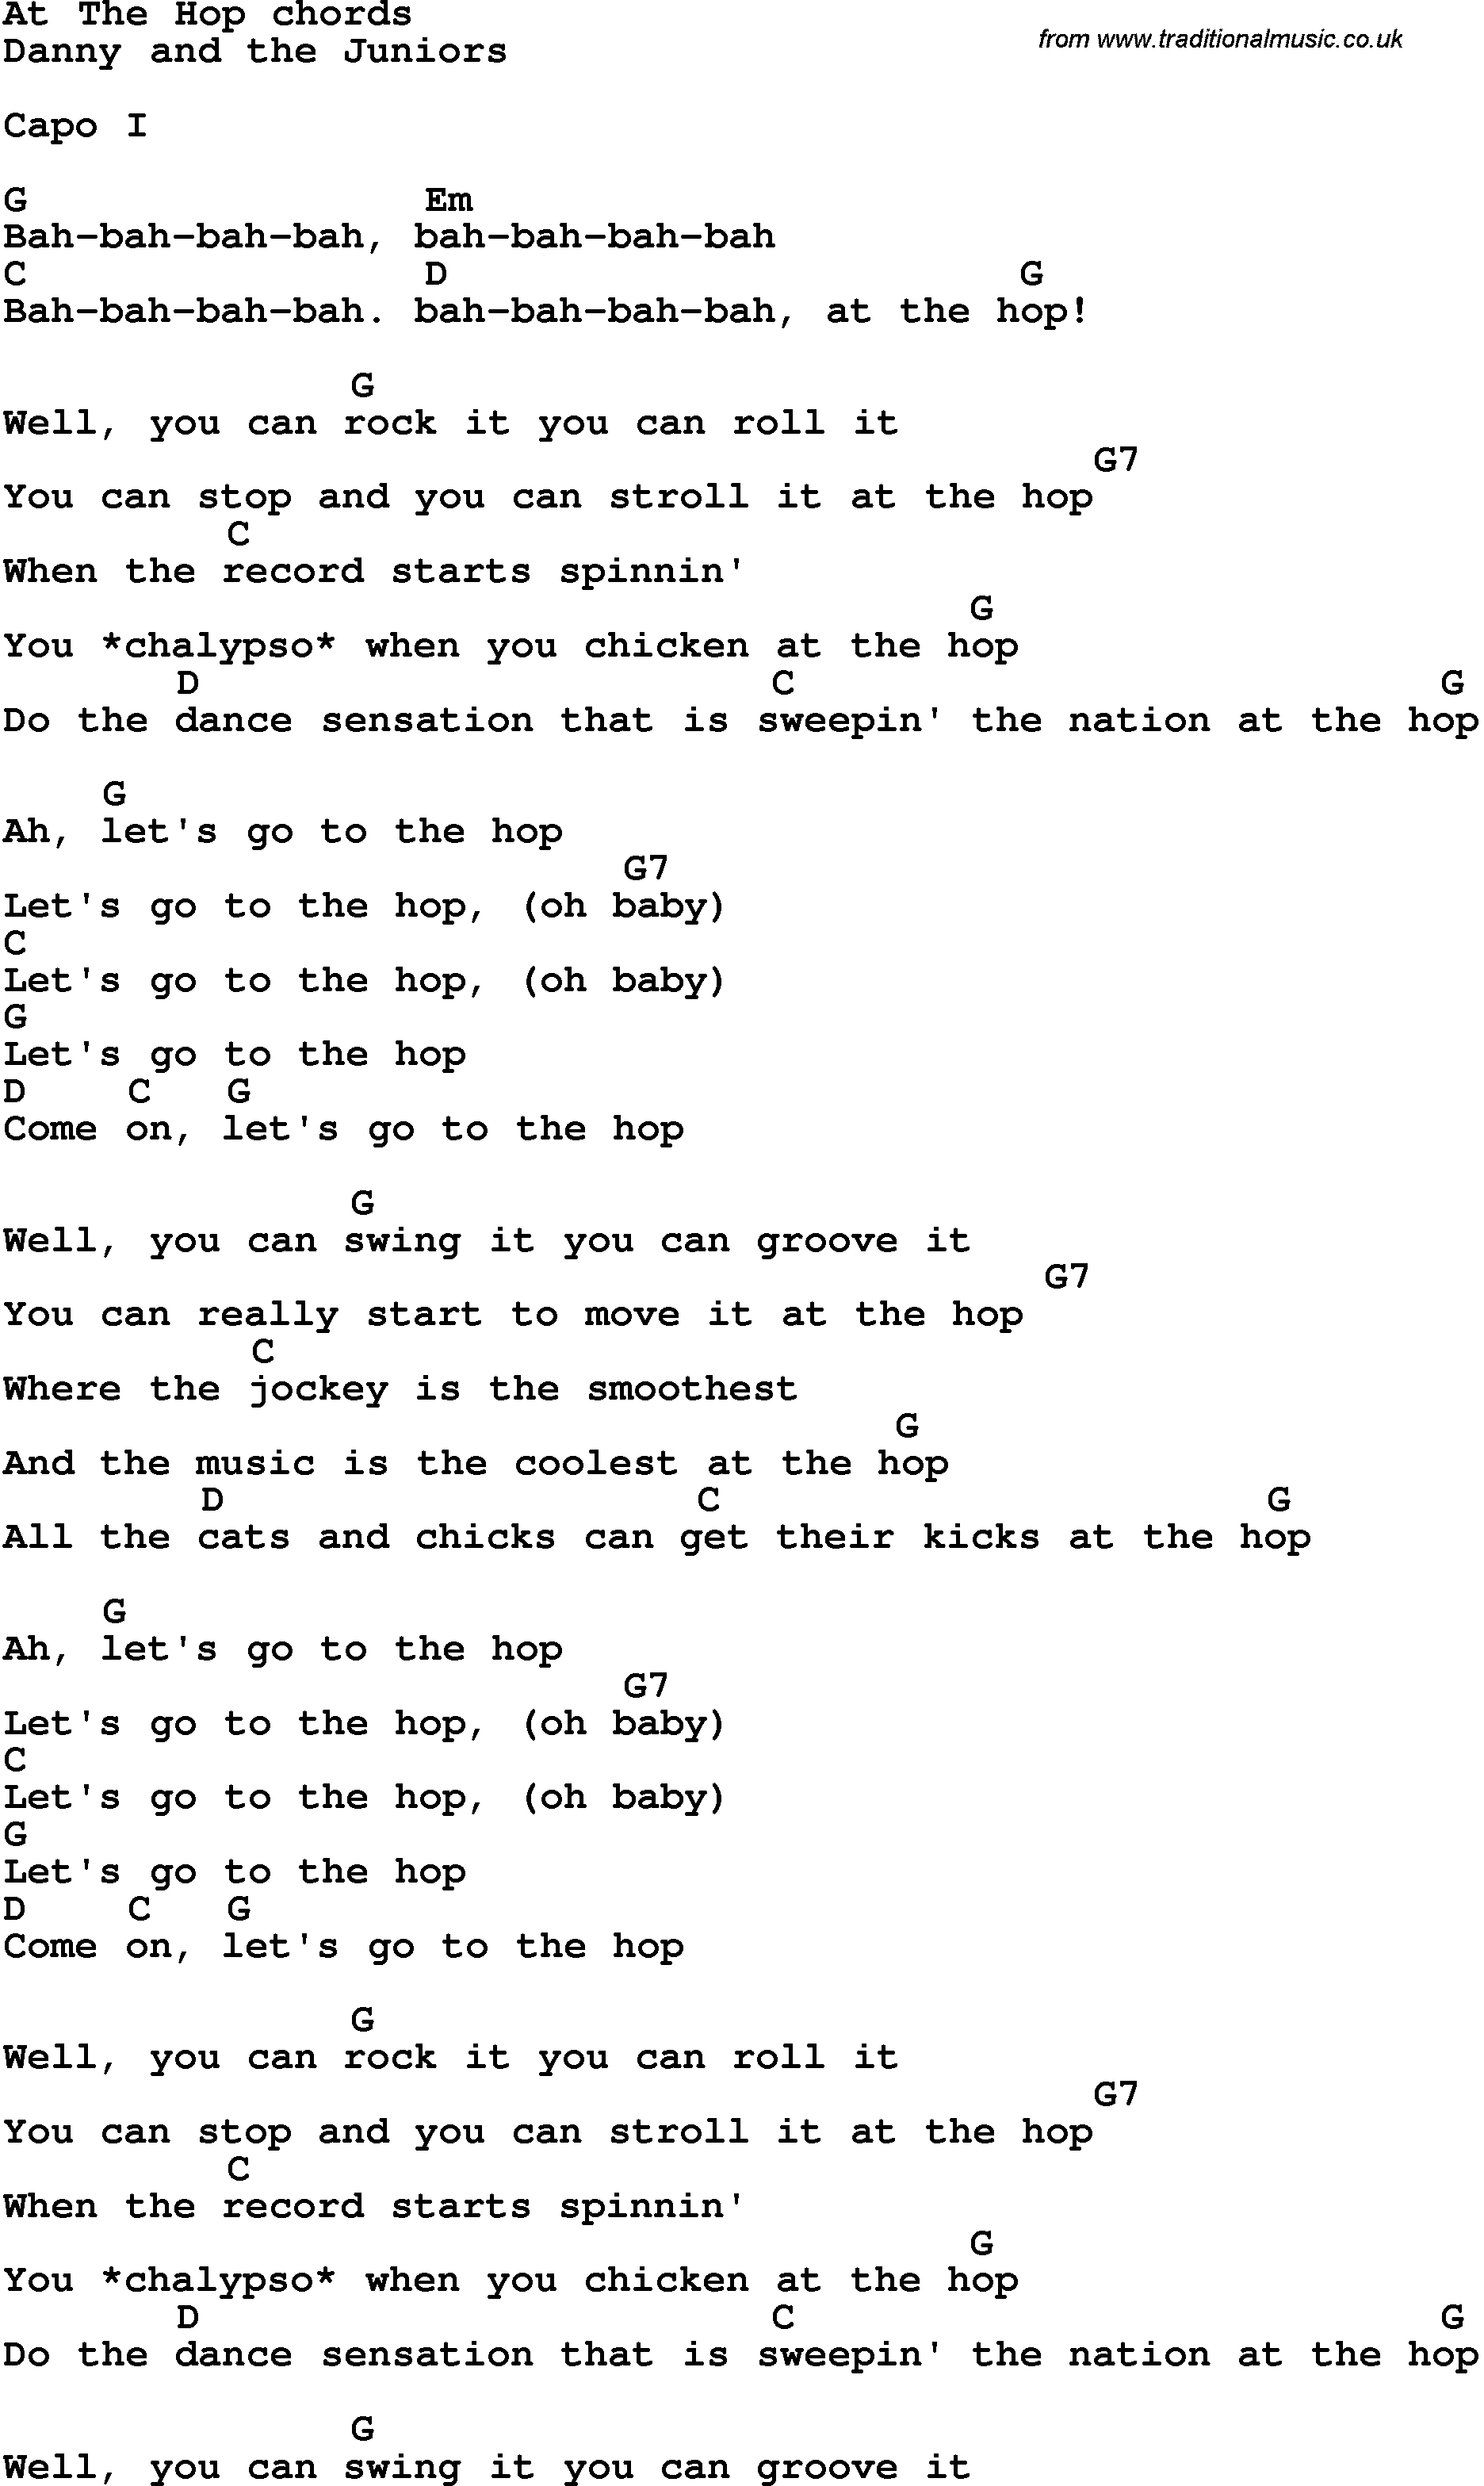 Song Lyrics With Guitar Chords For At The Hop Musician In 2018